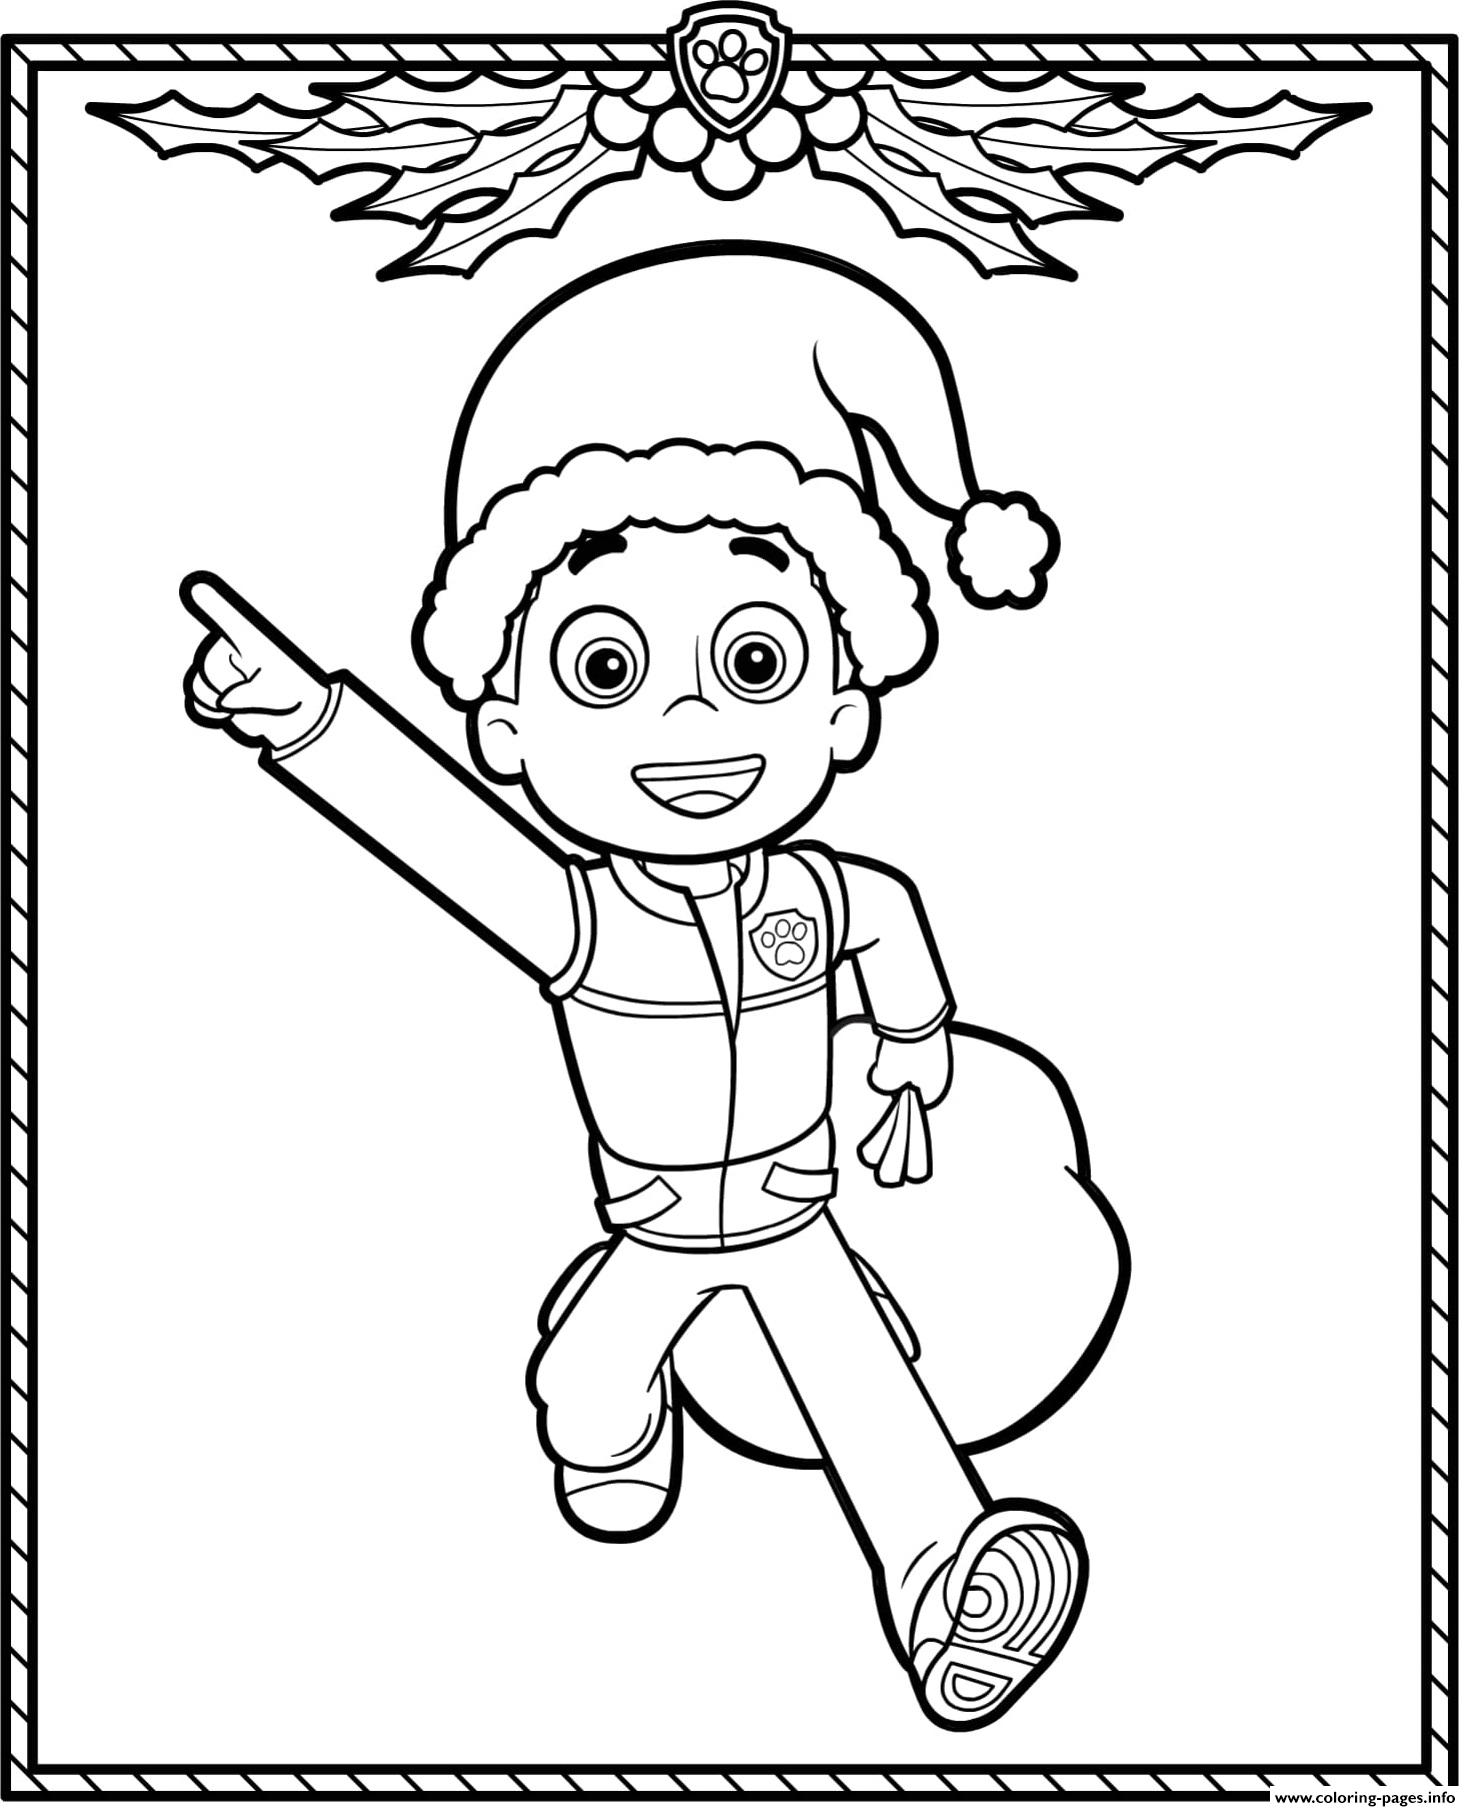 Coloring Pages : Paw Patrol Holiday Christmas Ryder Coloring ...